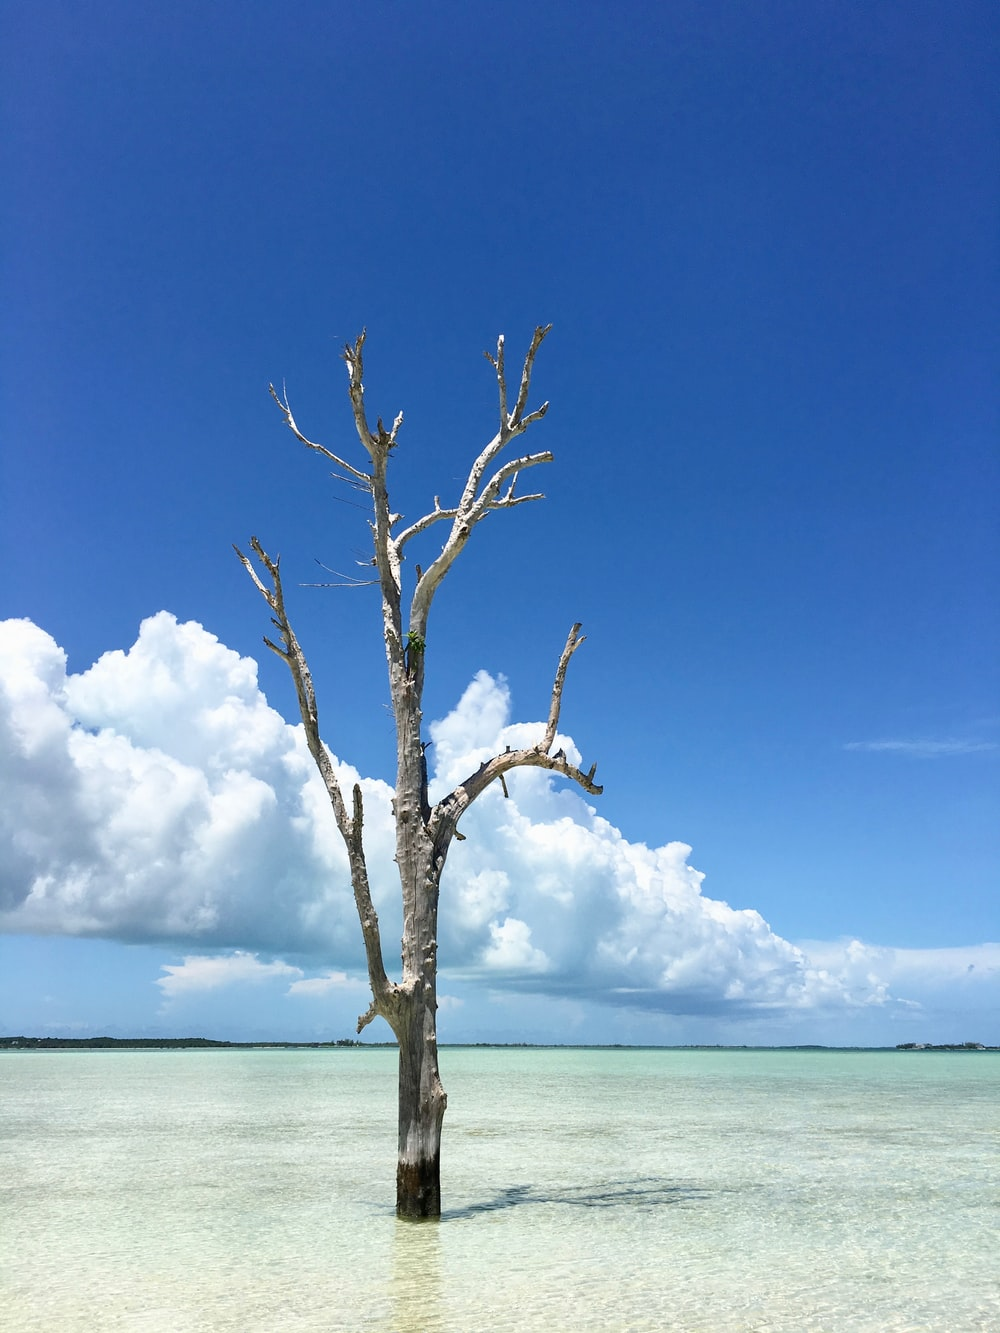 leafless tree on the beach under blue sky